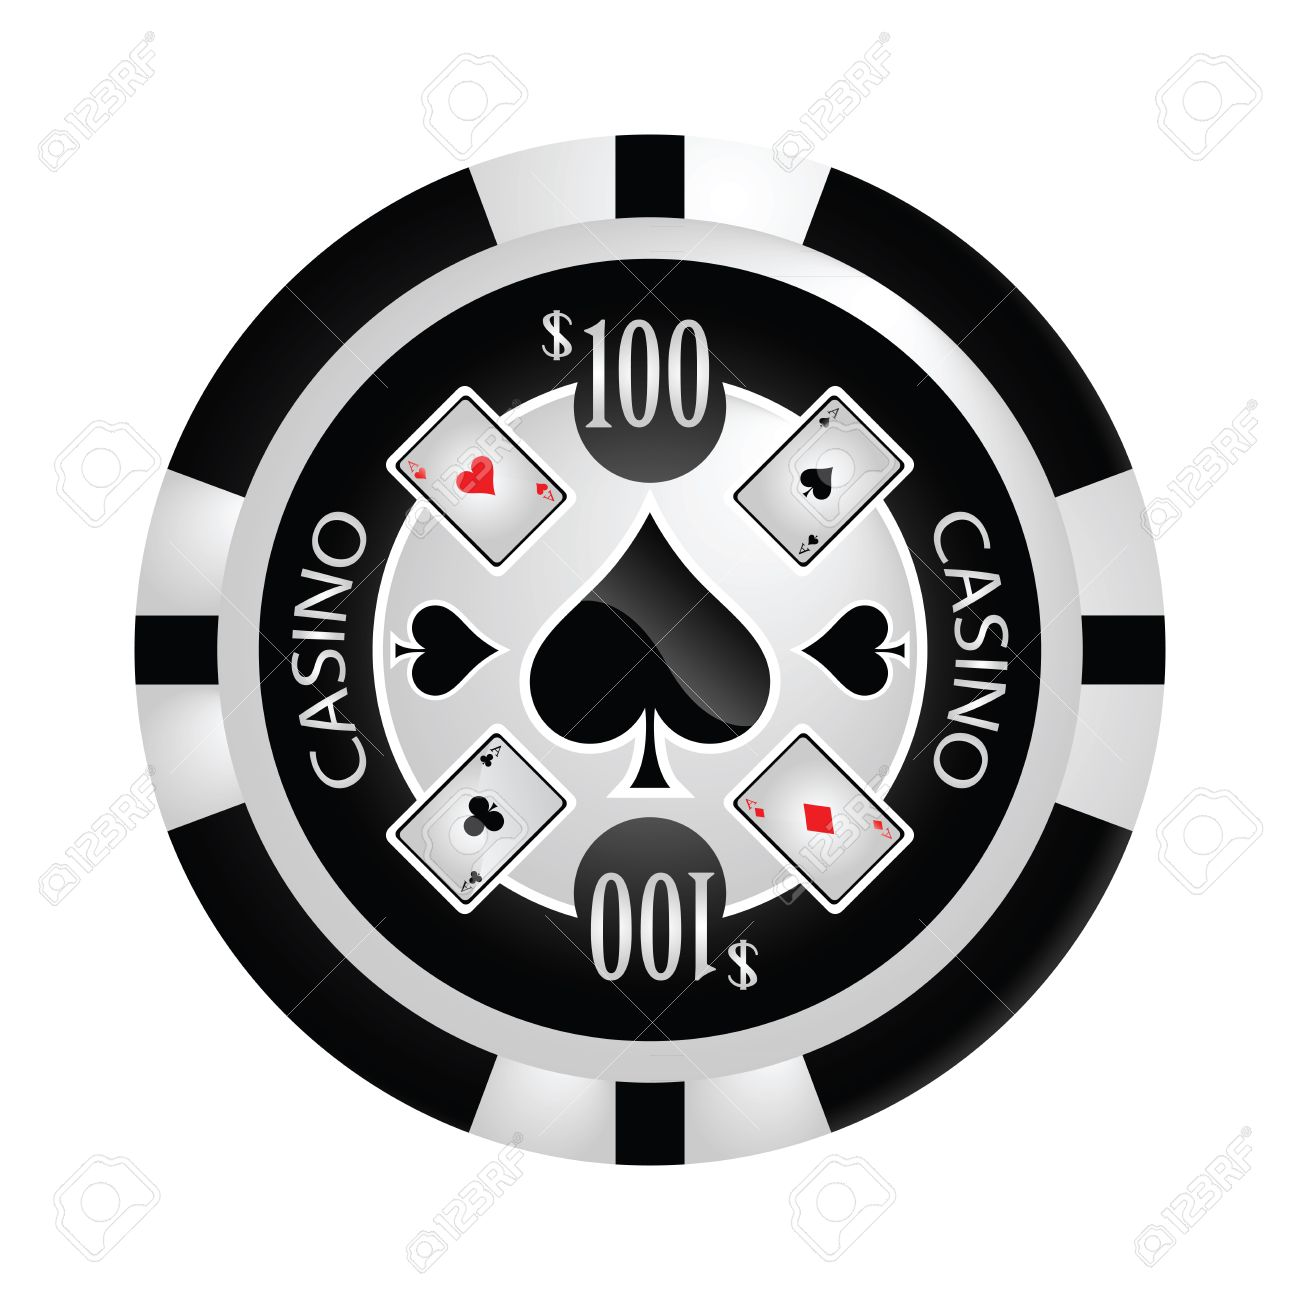 casino poker chip vector design royalty free cliparts vectors and rh 123rf com poker chips vector clipart poker chips vector clipart